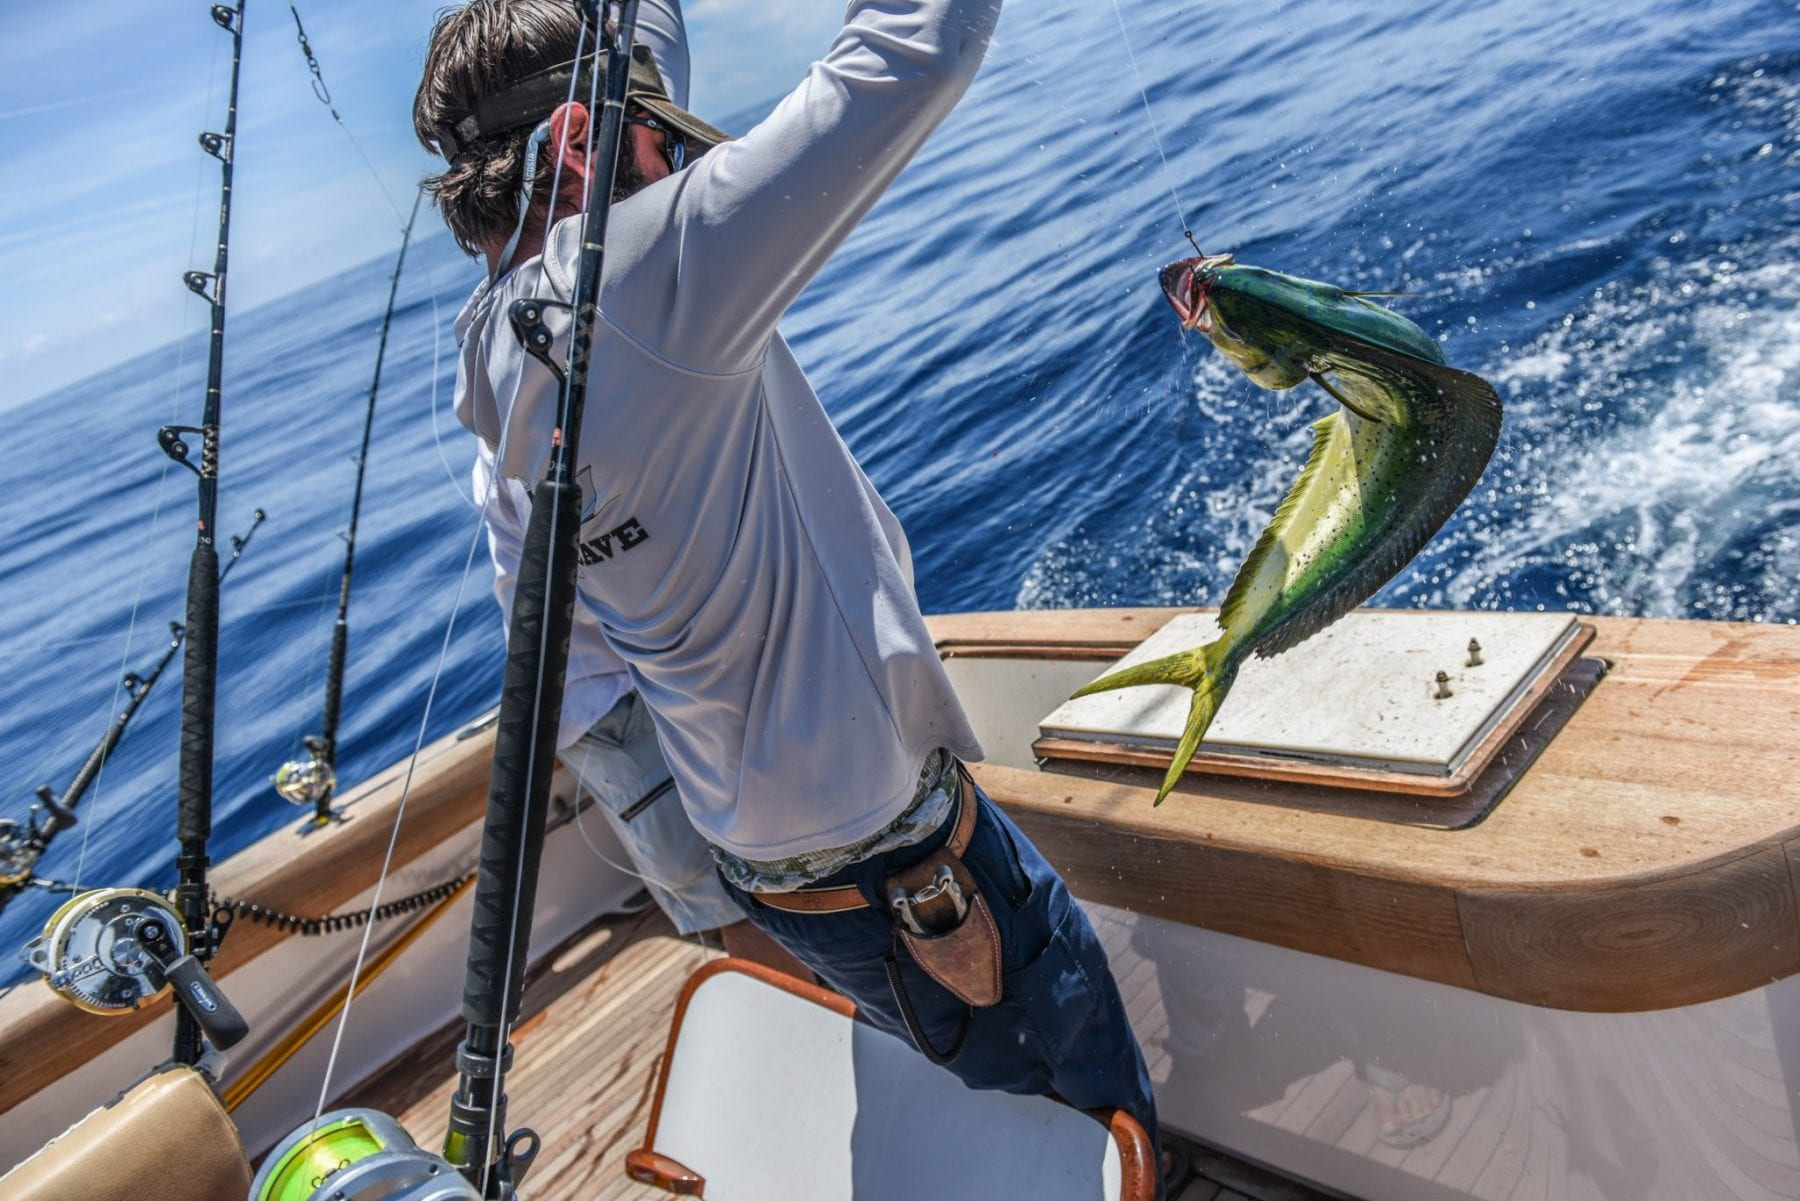 Bragboard Archives | Page 34 of 163 | Coastal Angler & The